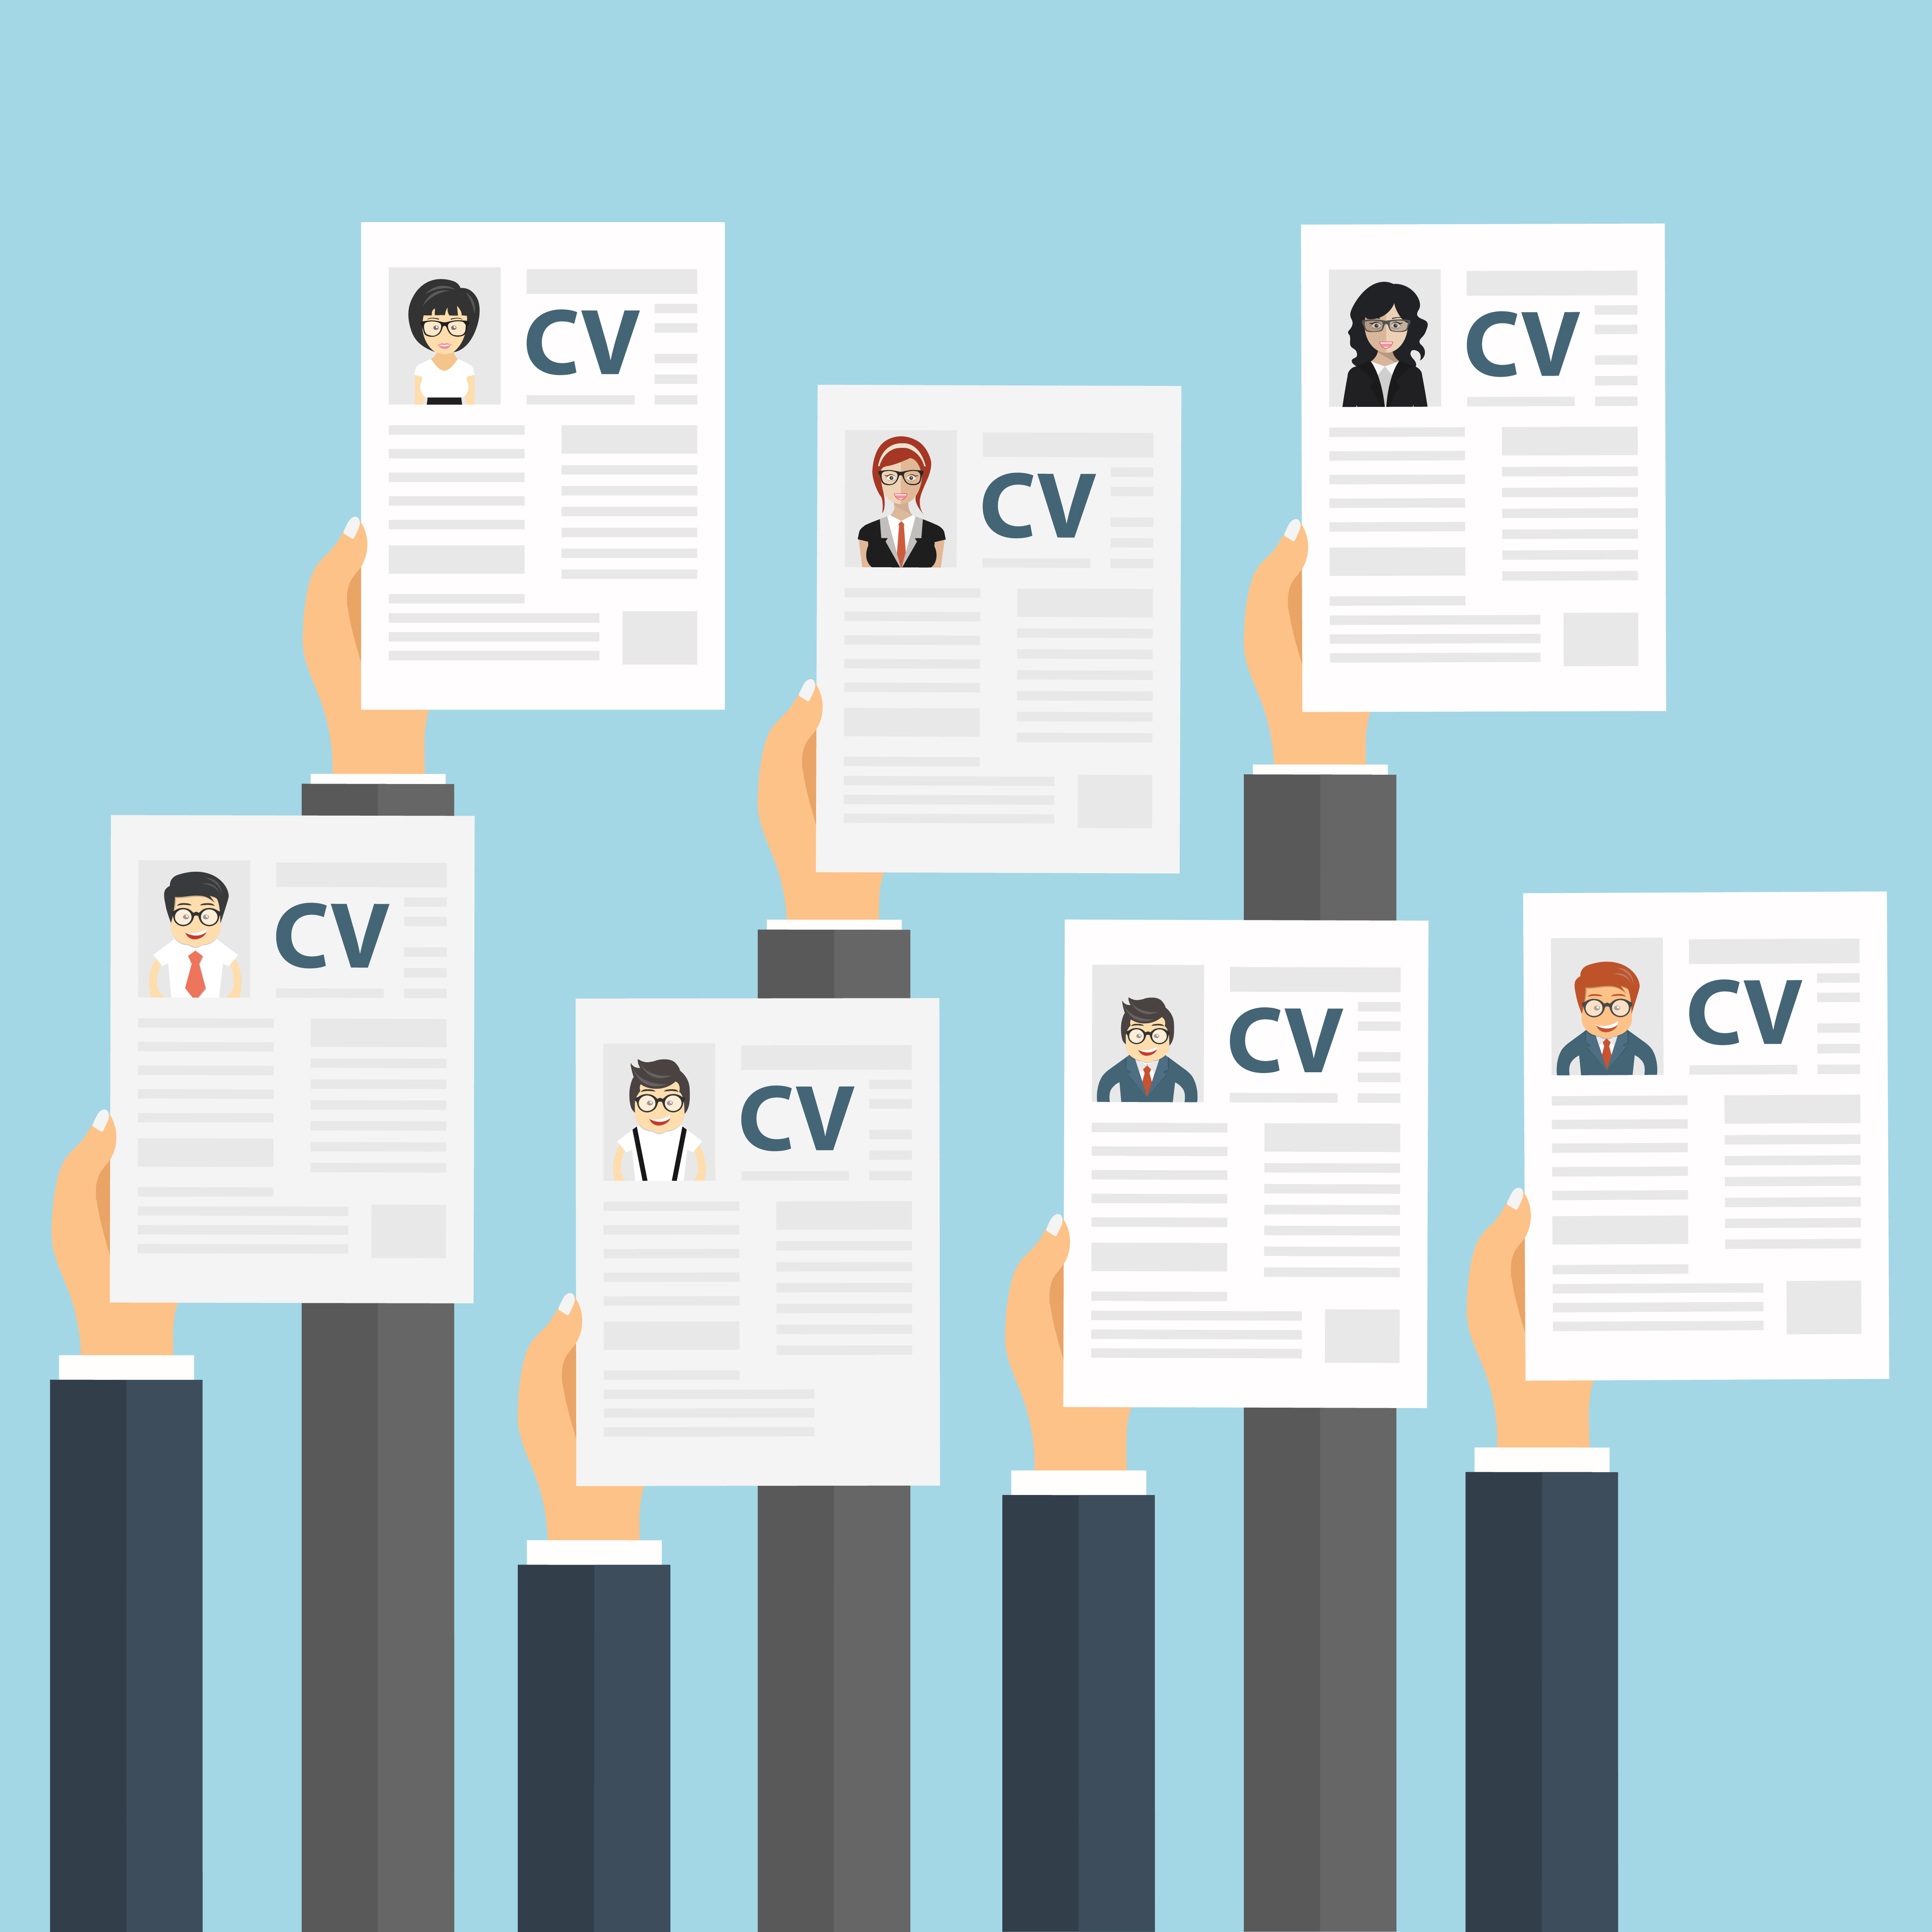 hands holding cv papers  human resources management concept  searching professional staff